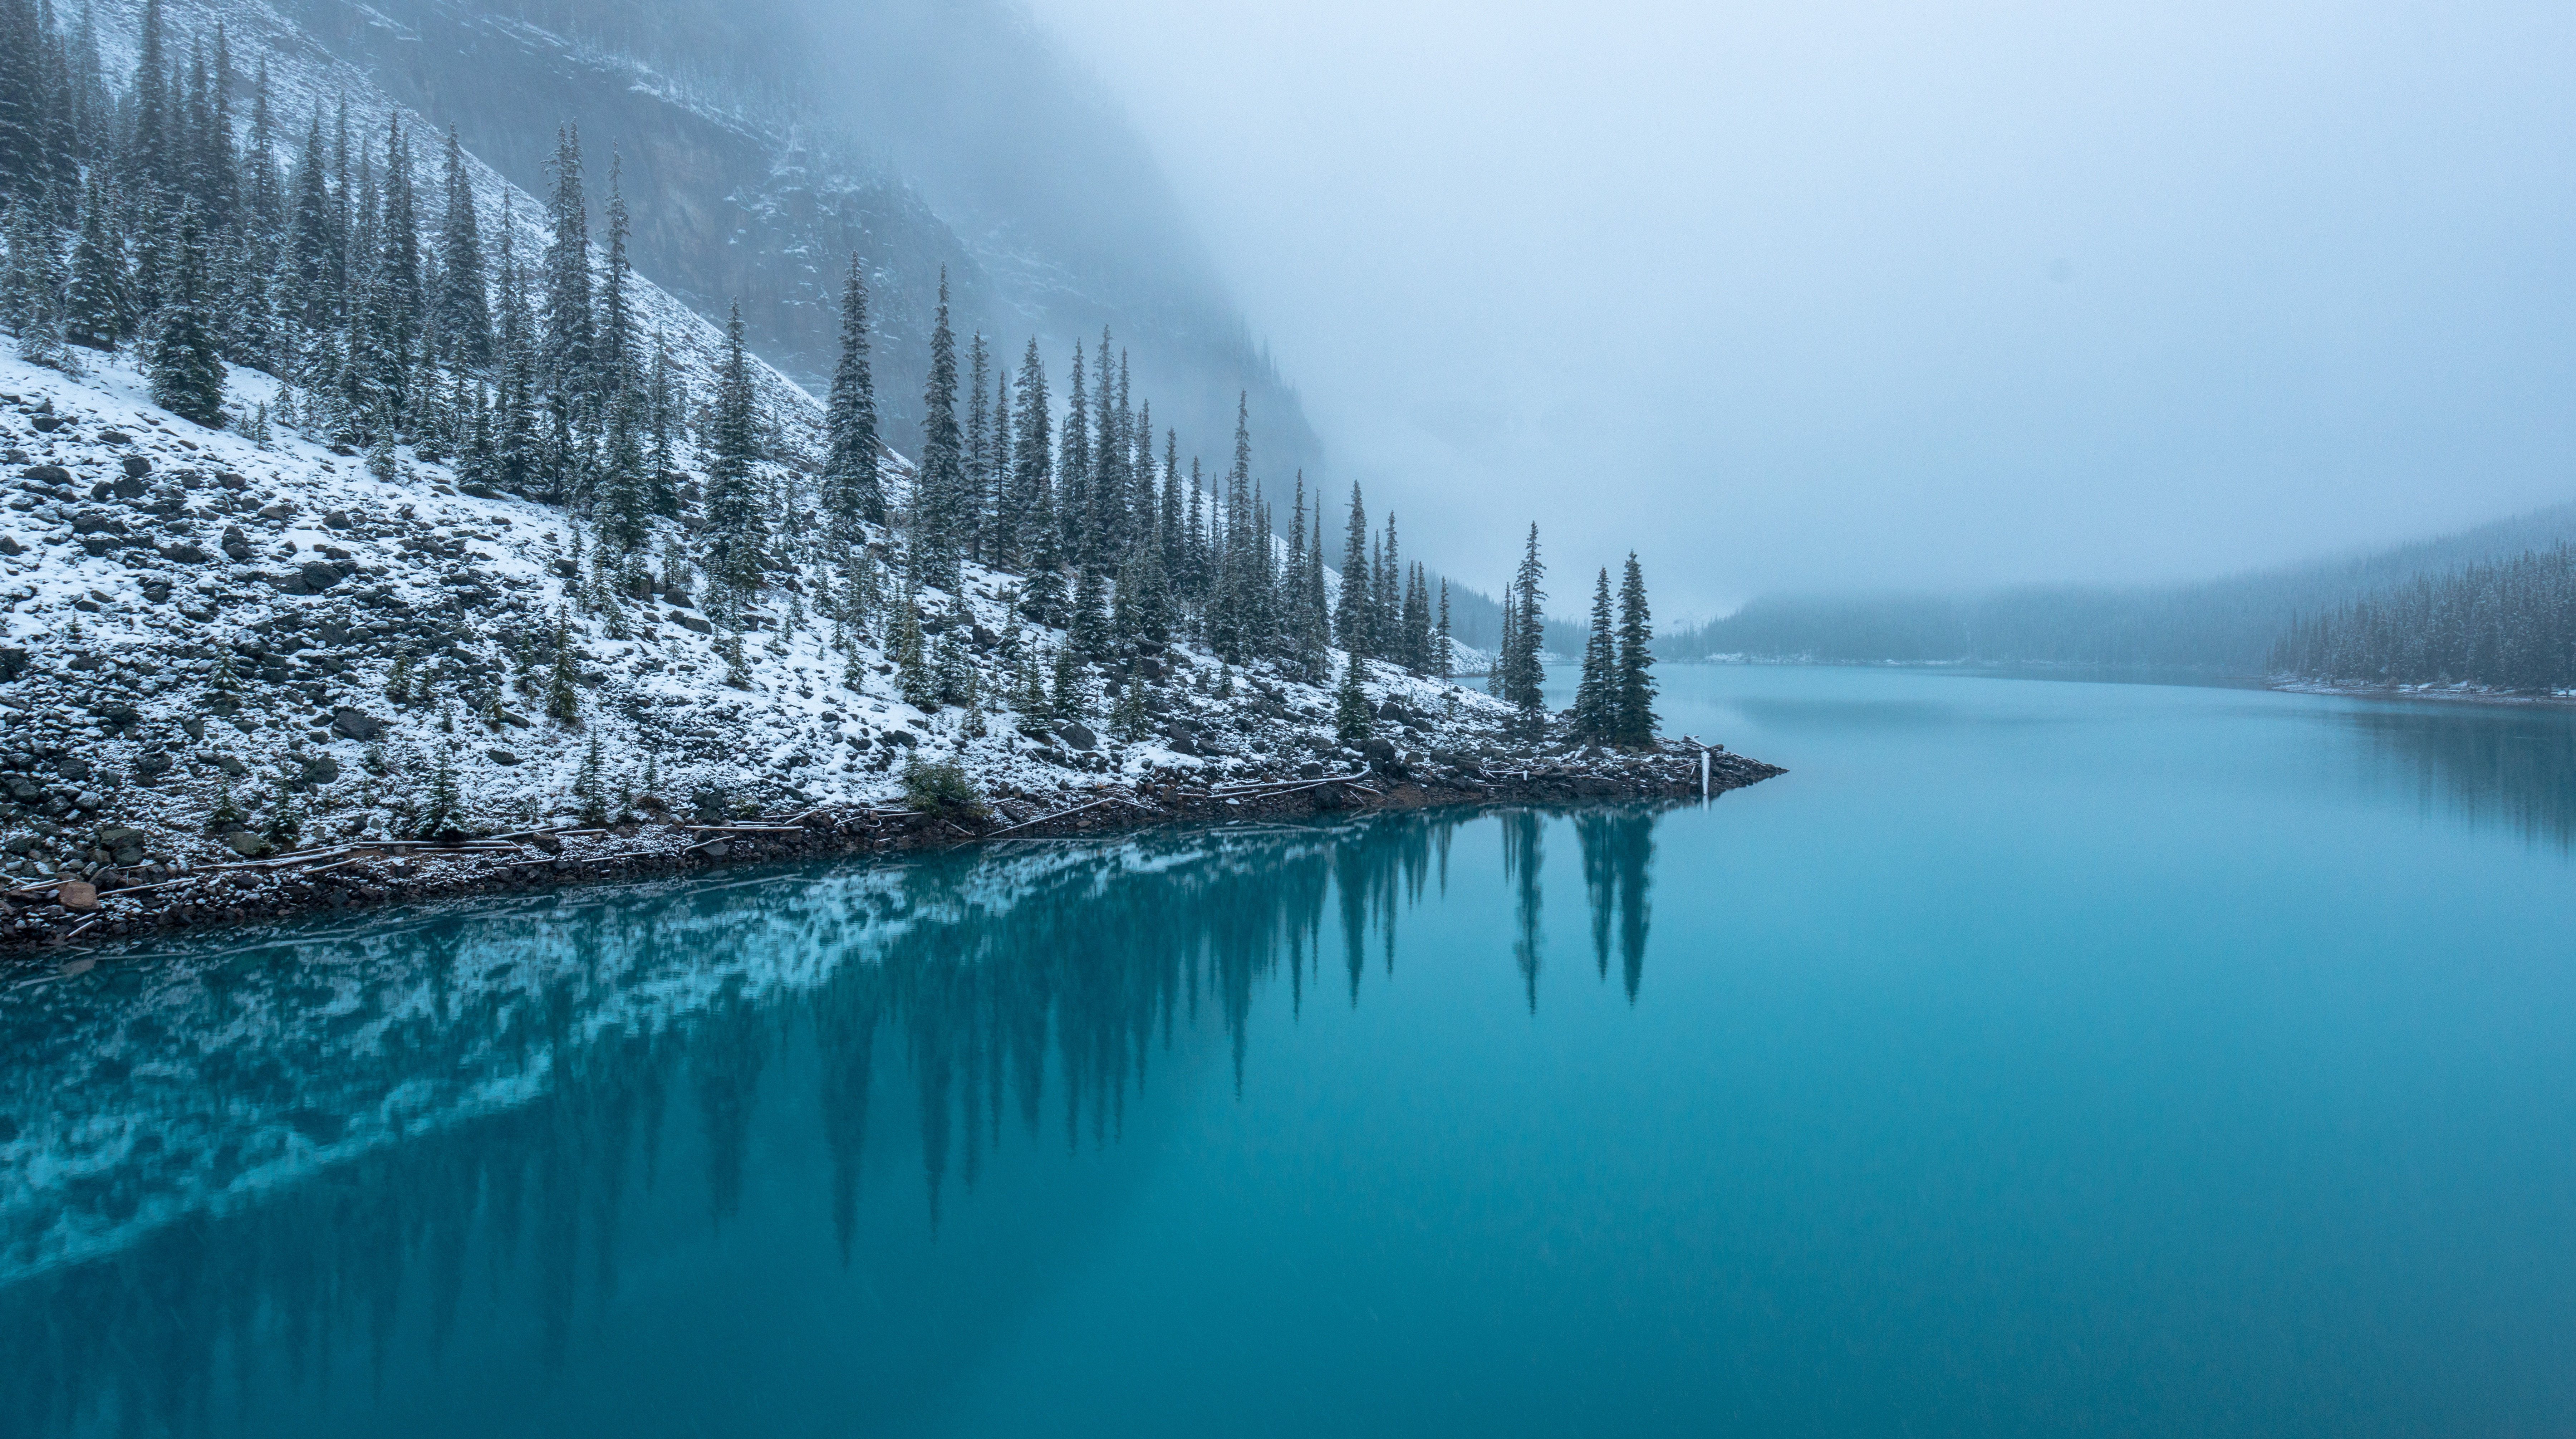 North America; Canada; The Canadian Rockies; Banff National Park; Moraine Lake; Landscape; Lakes; Mountains; Nature; Winter; Snow; Turquoise; Nikon D800